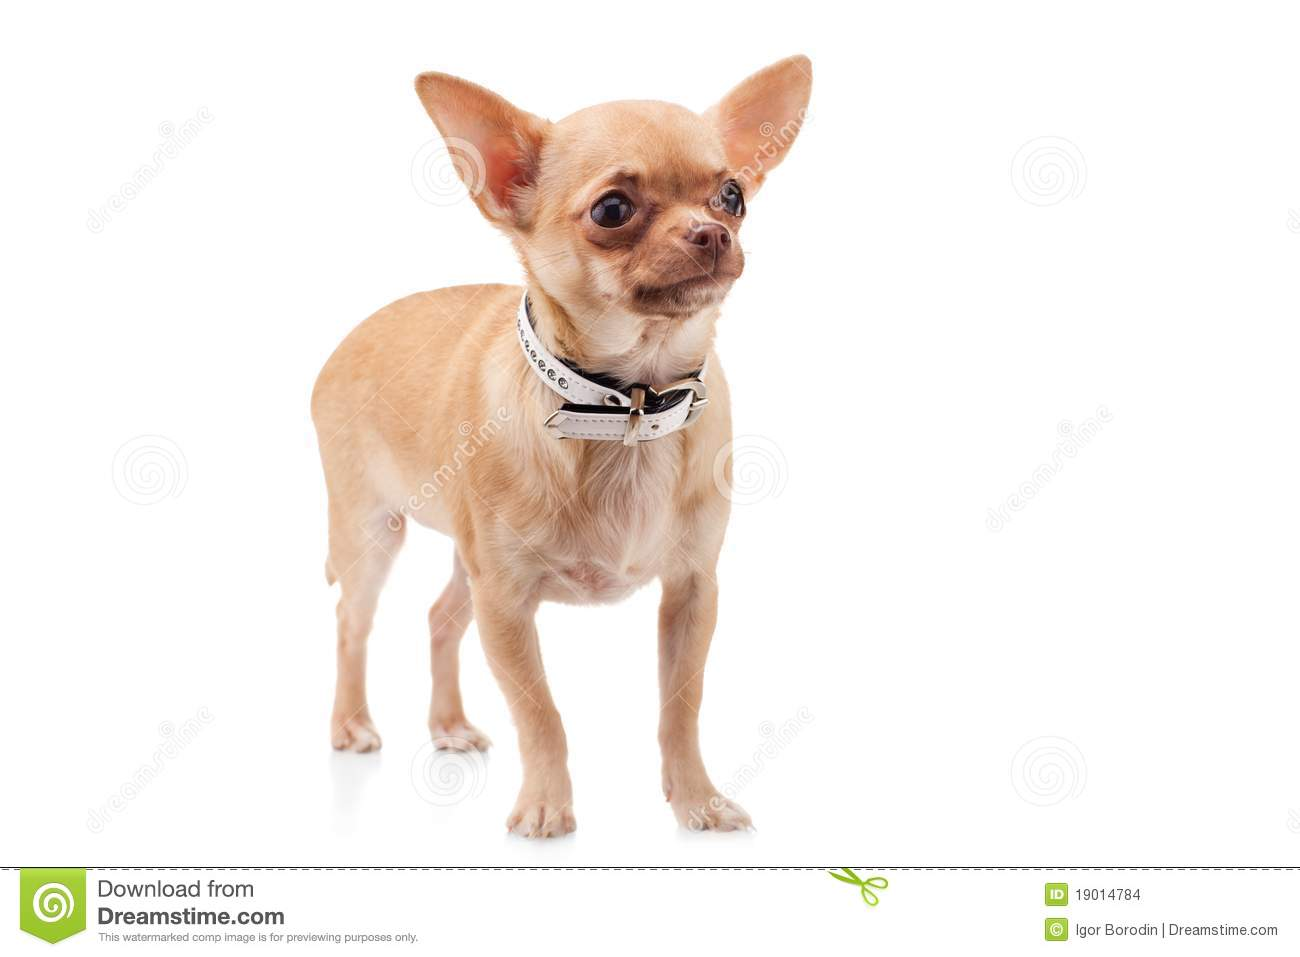 chihuahua dog clipart - photo #37